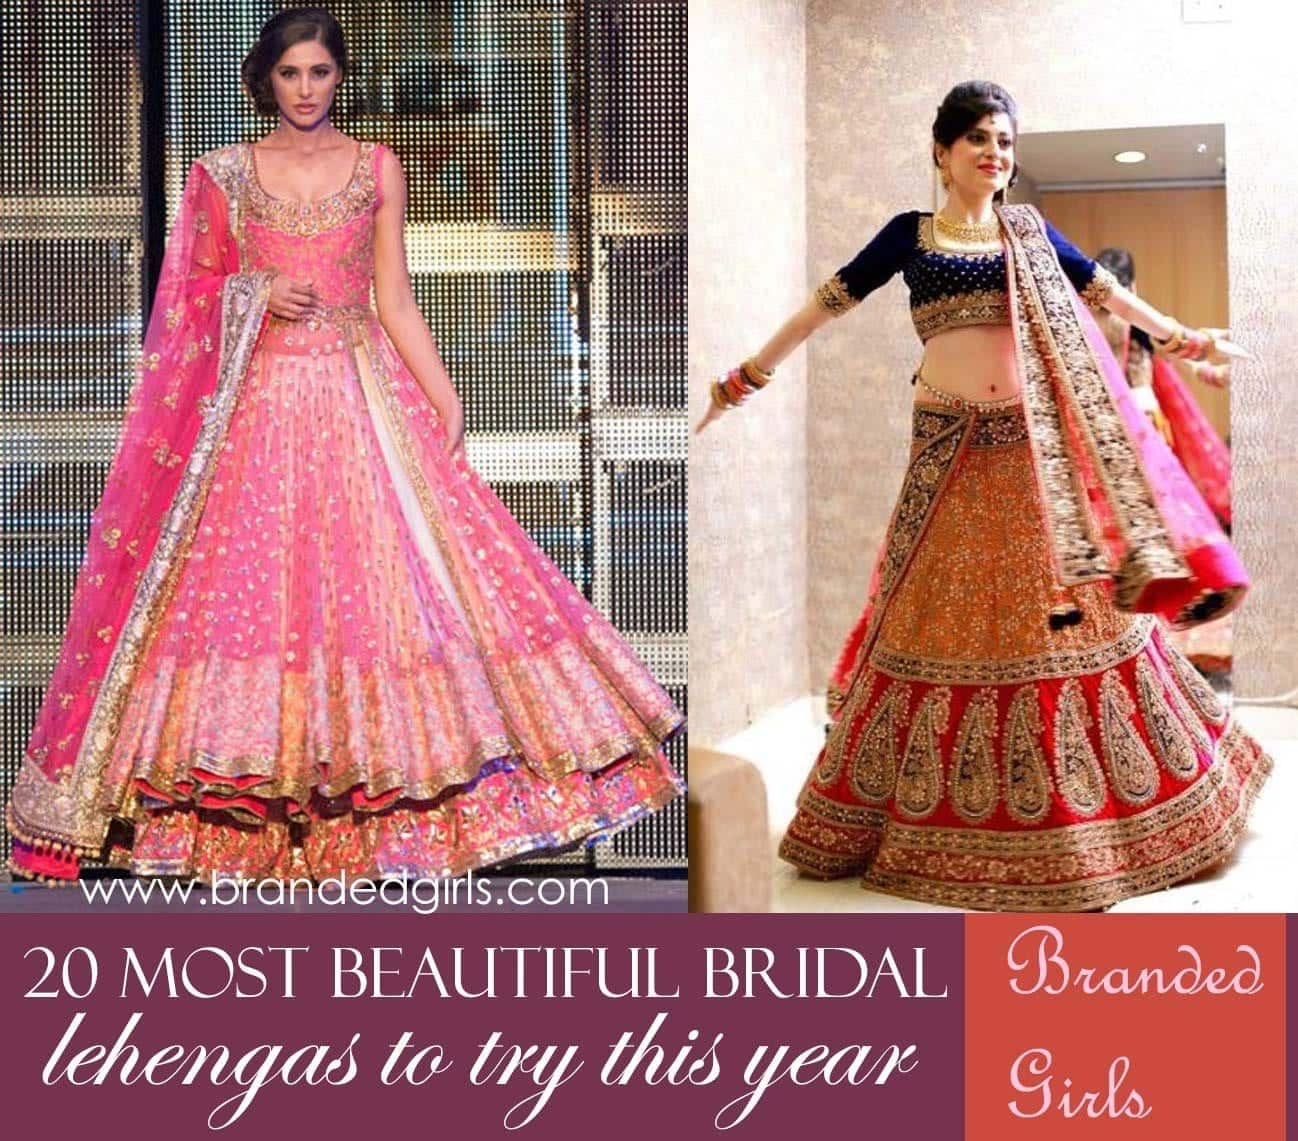 polyvore-sample-2 20 Latest Bridal Lehenga Designs and Ideas to try this year